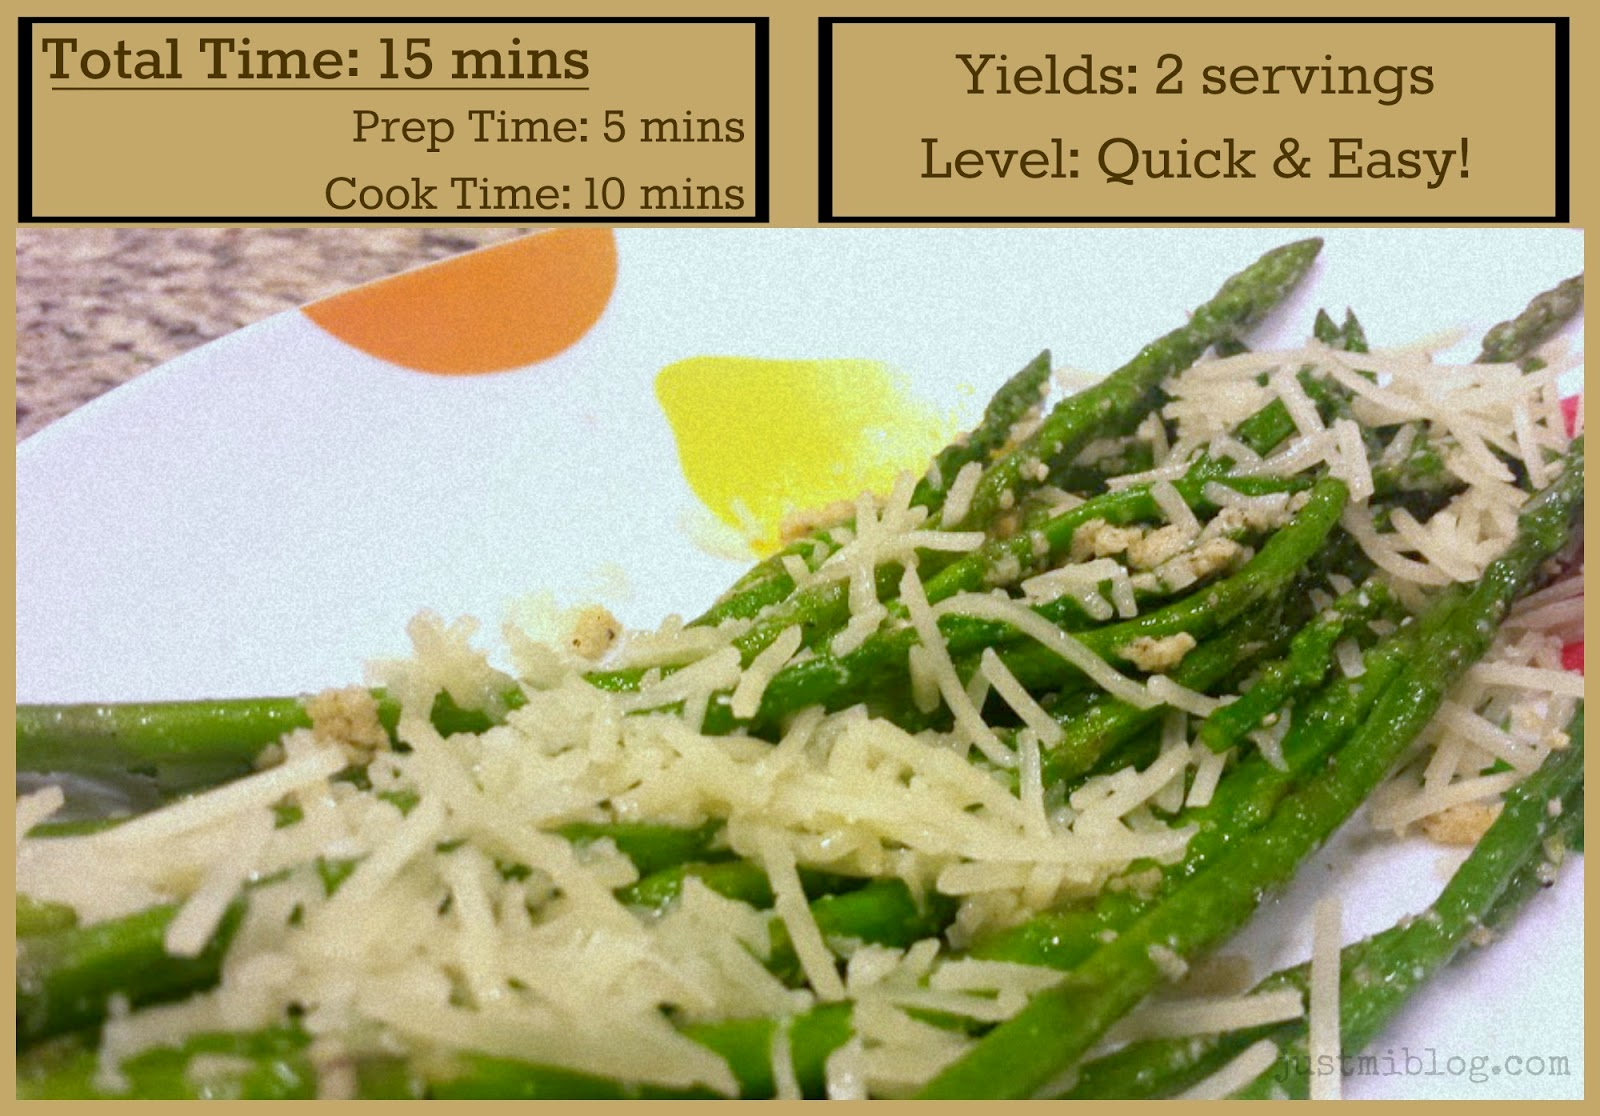 Total time, serving sizes, and cooking level for asparagus and Parmesan cheese.